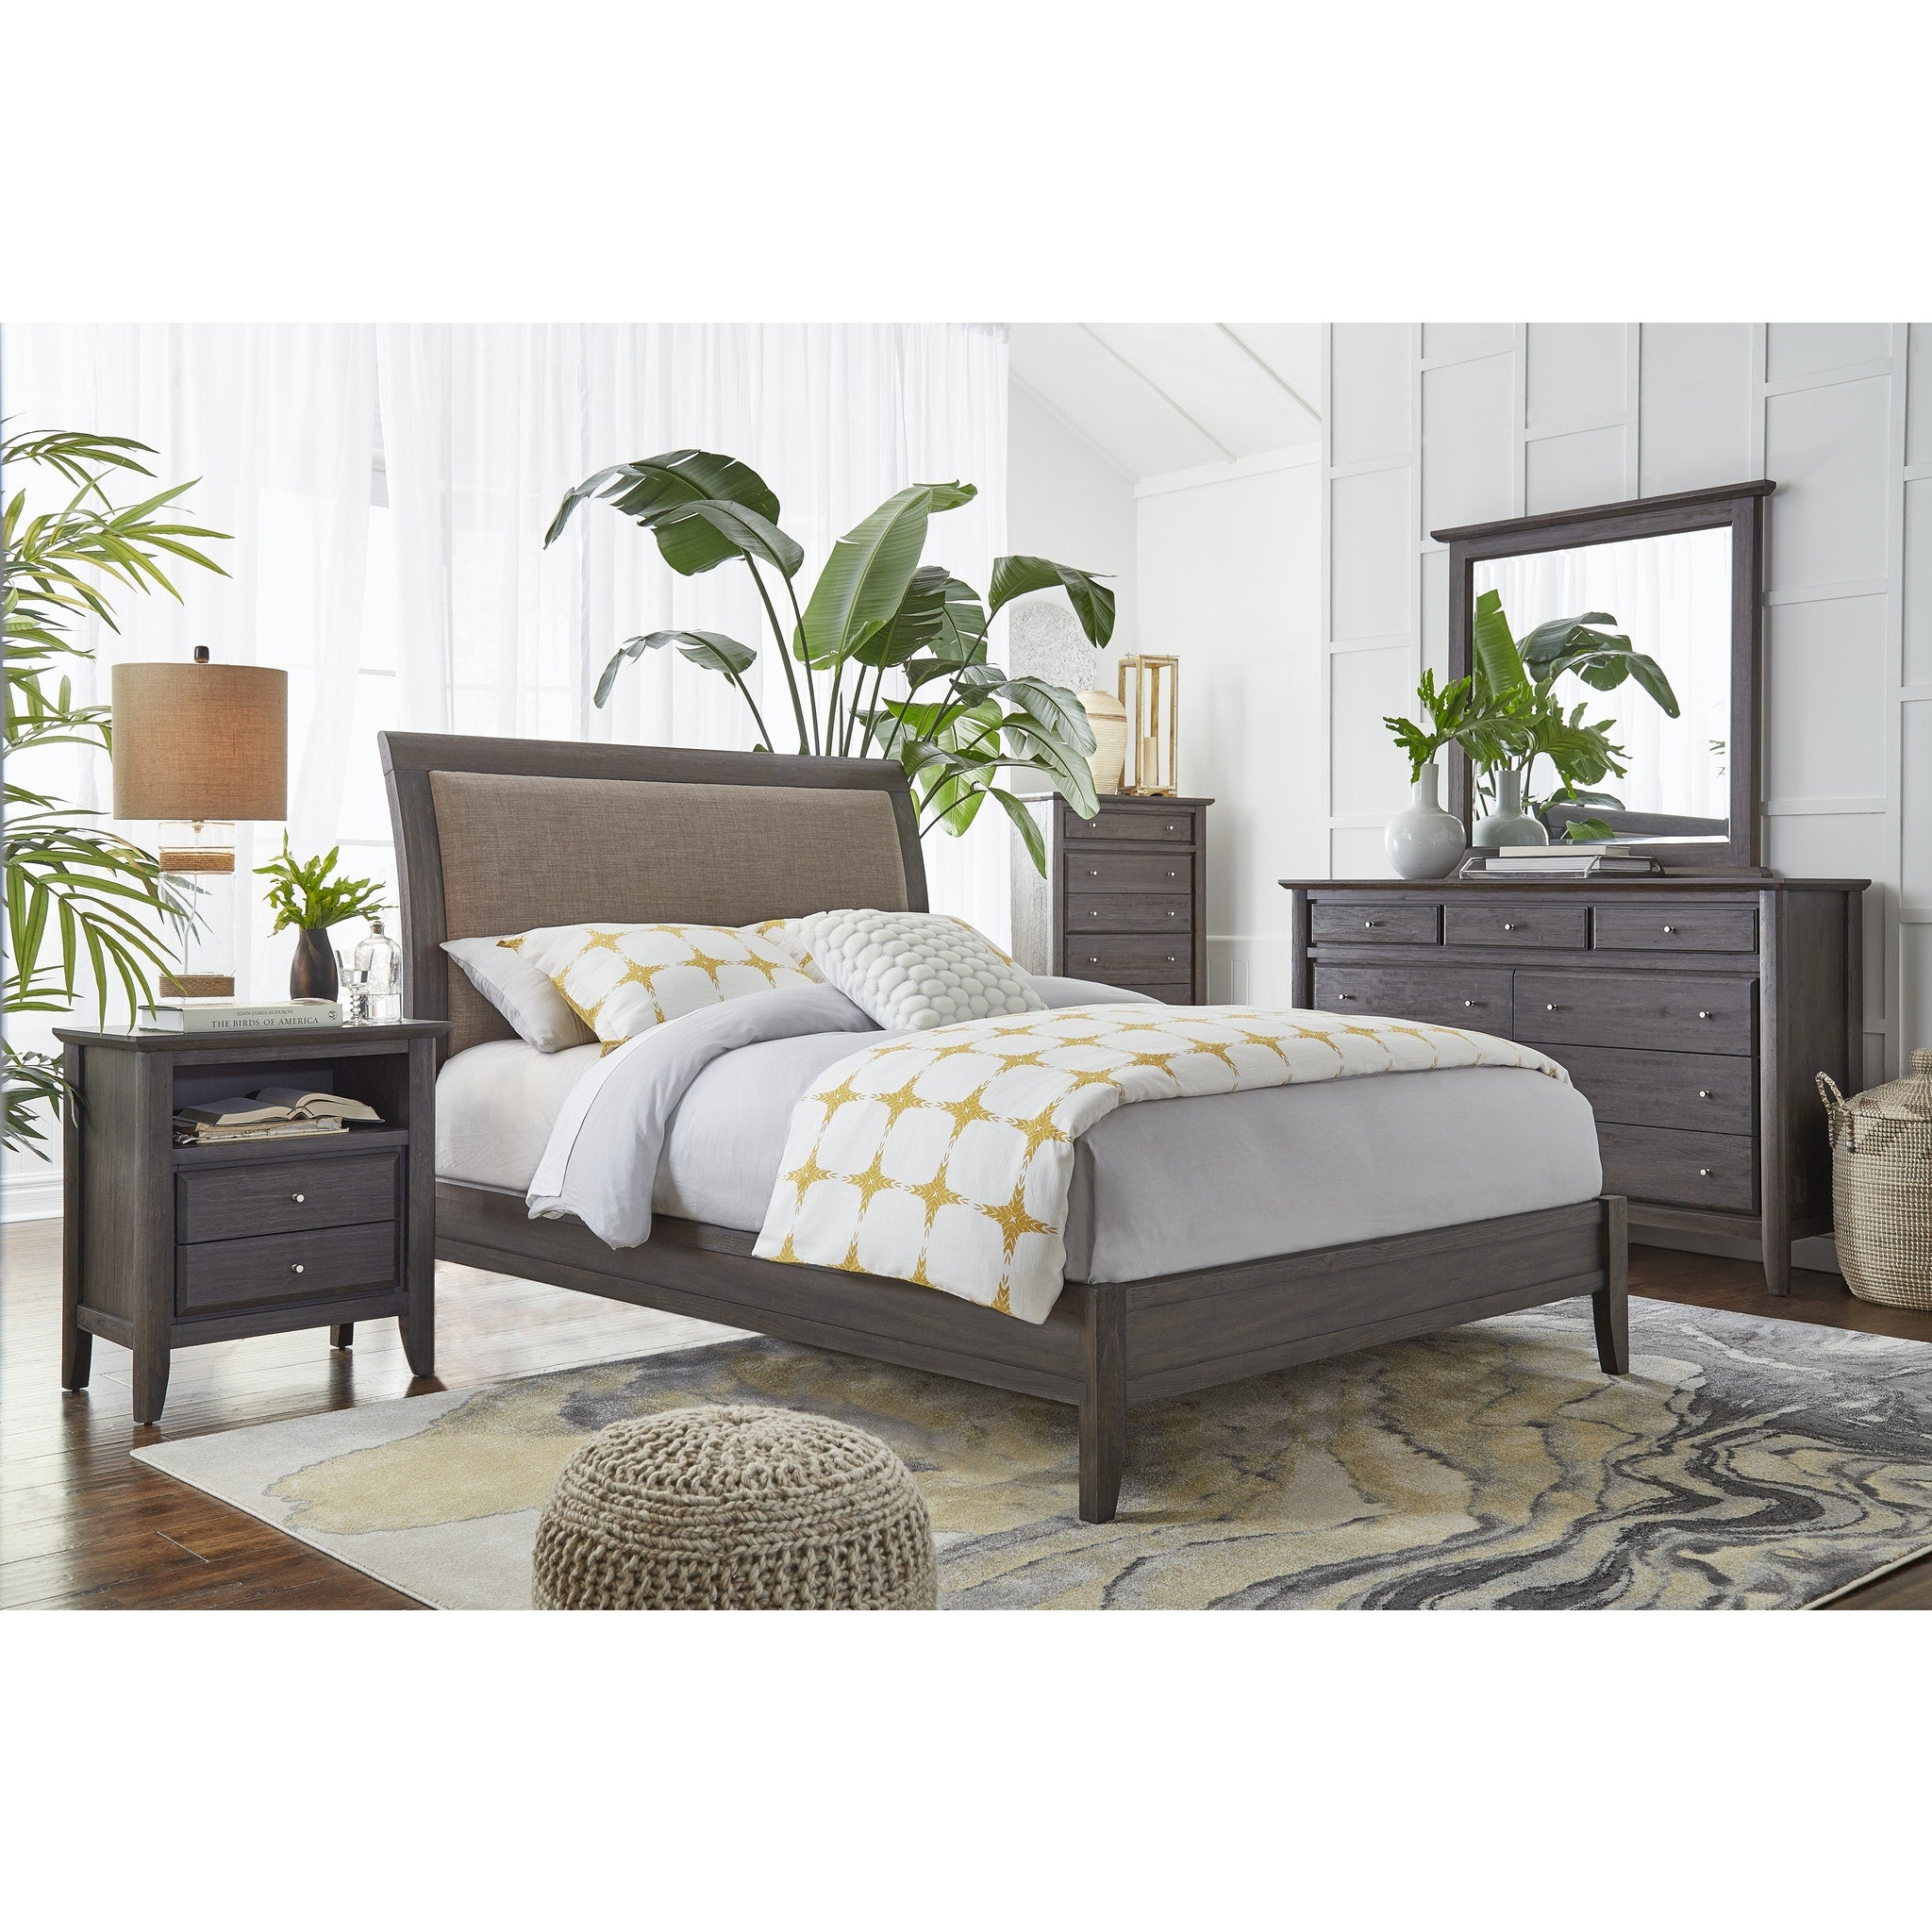 City II Queen-size Upholstered Sleigh Bed in Basalt Gray